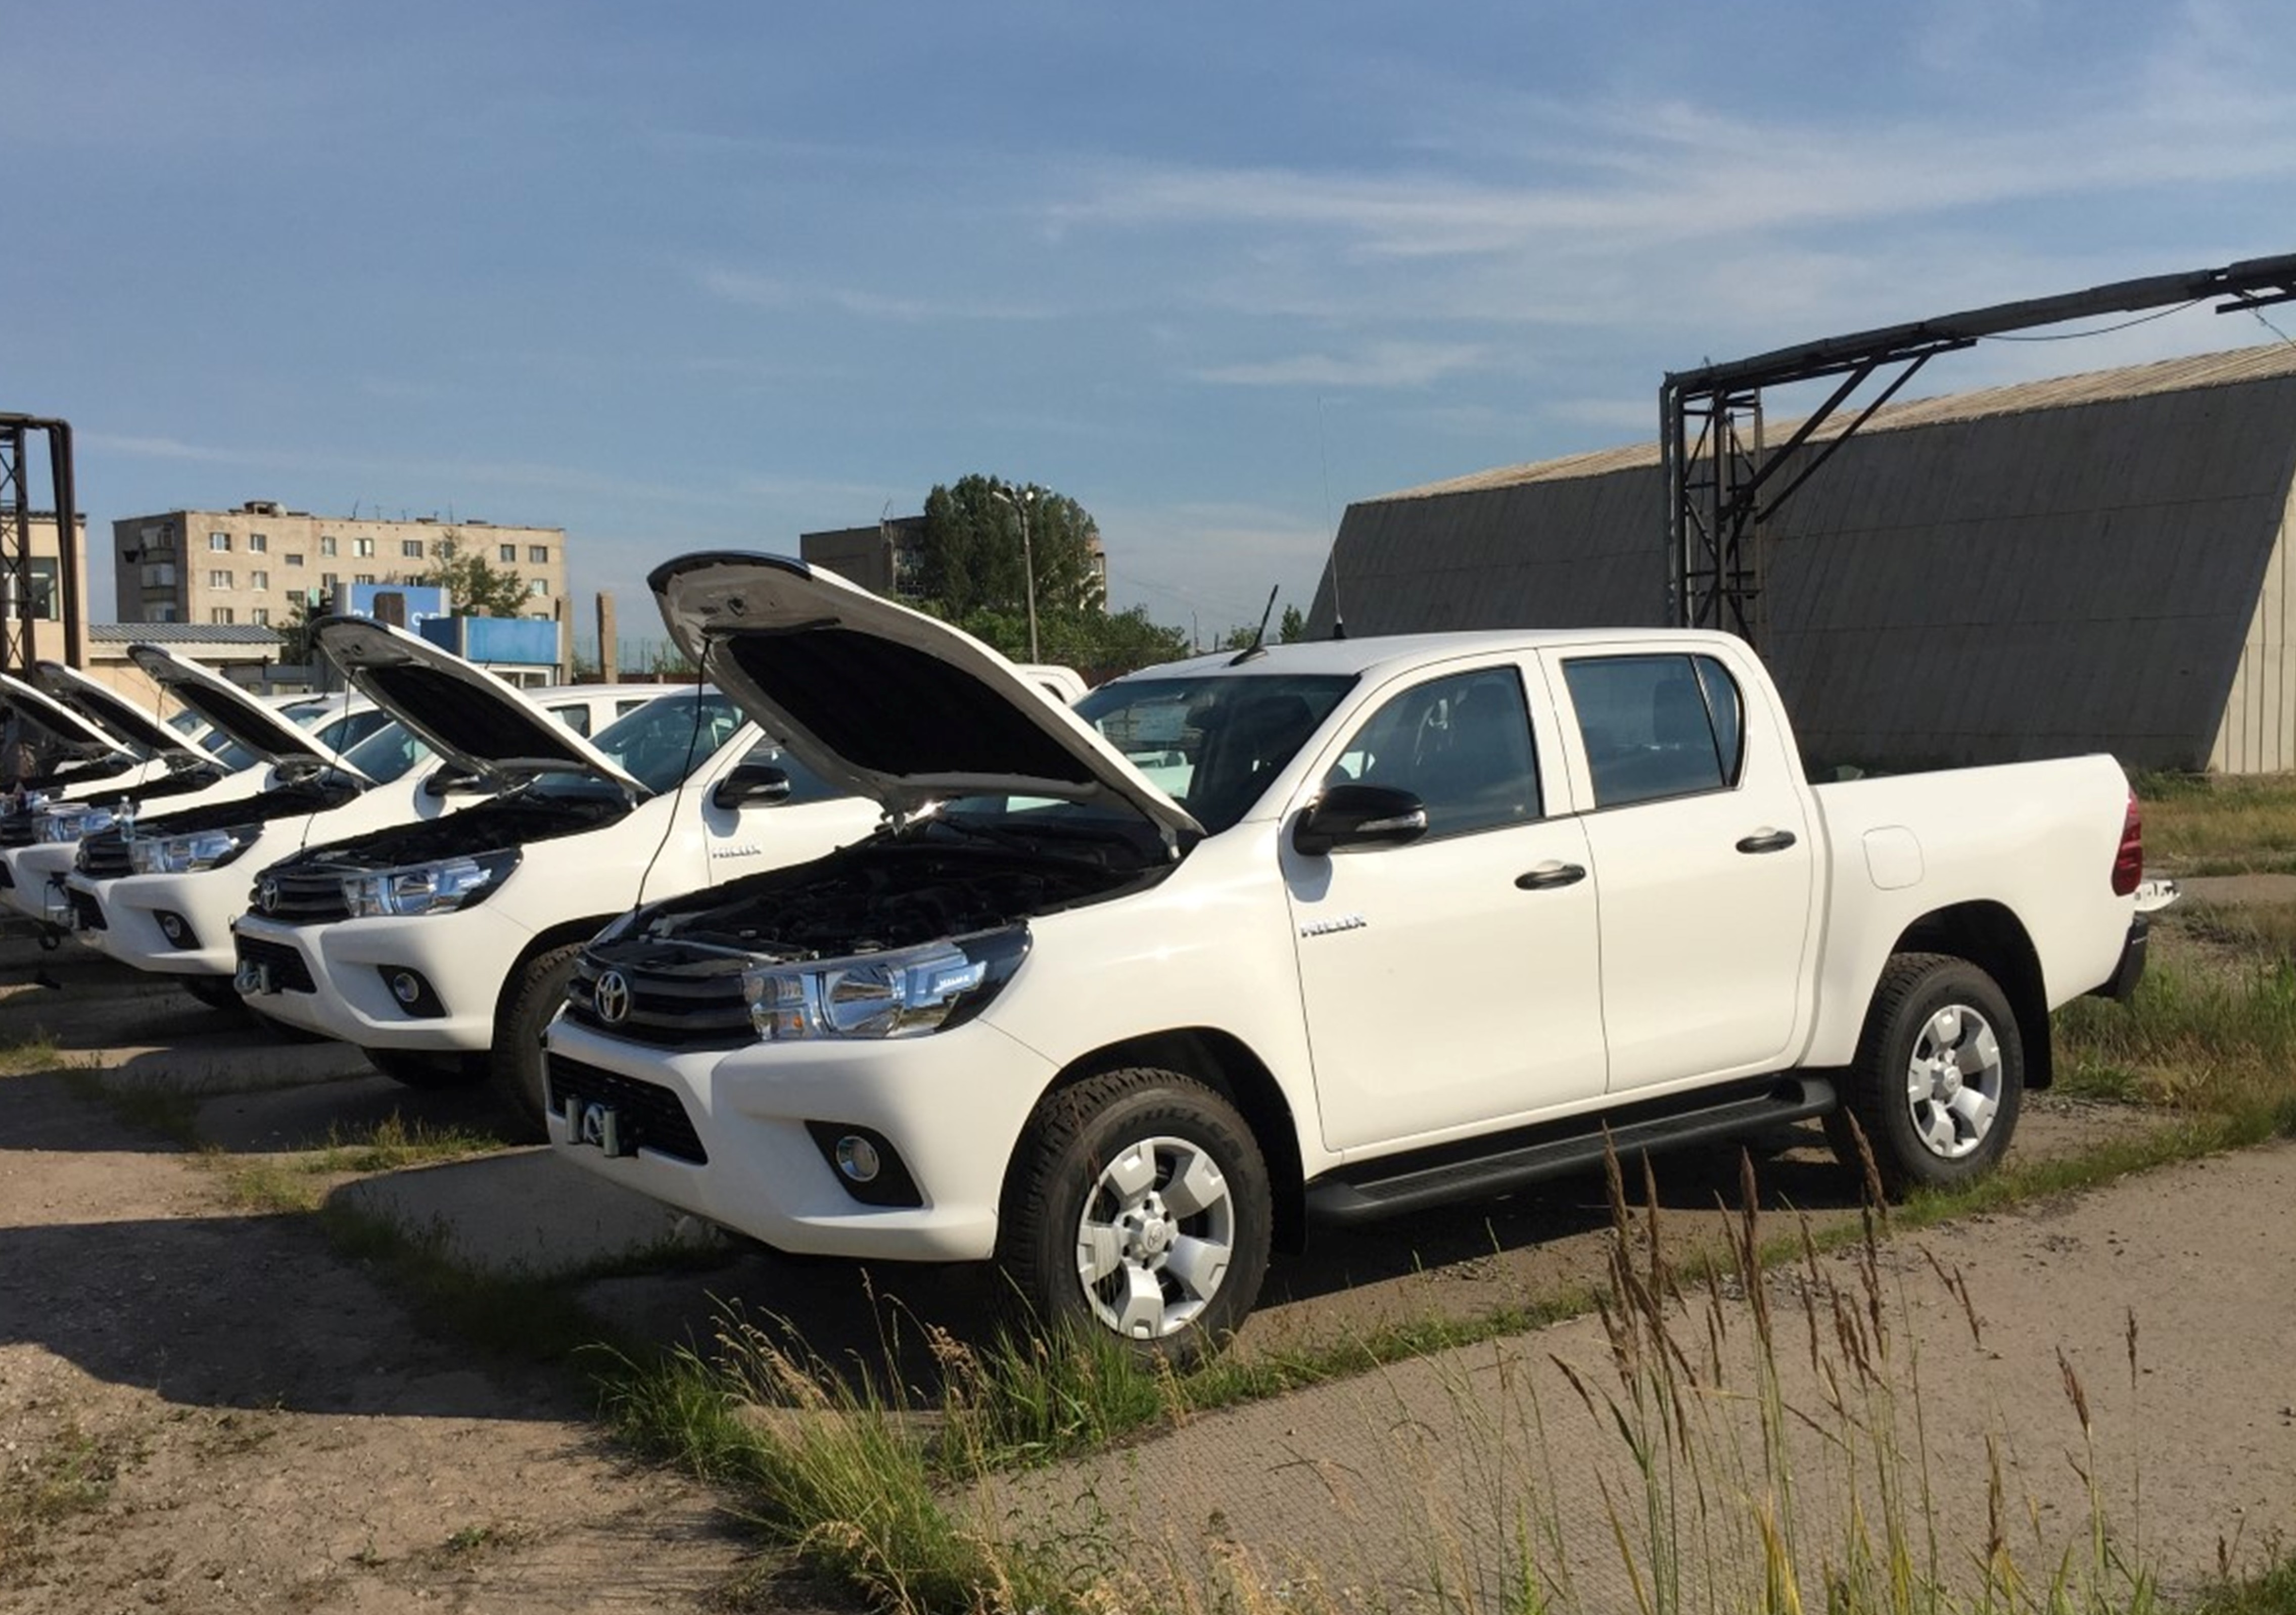 The US Embassy June 27 in Astana handed over six Toyota pickup trucks to local police. [US Embassy in Kazakhstan]